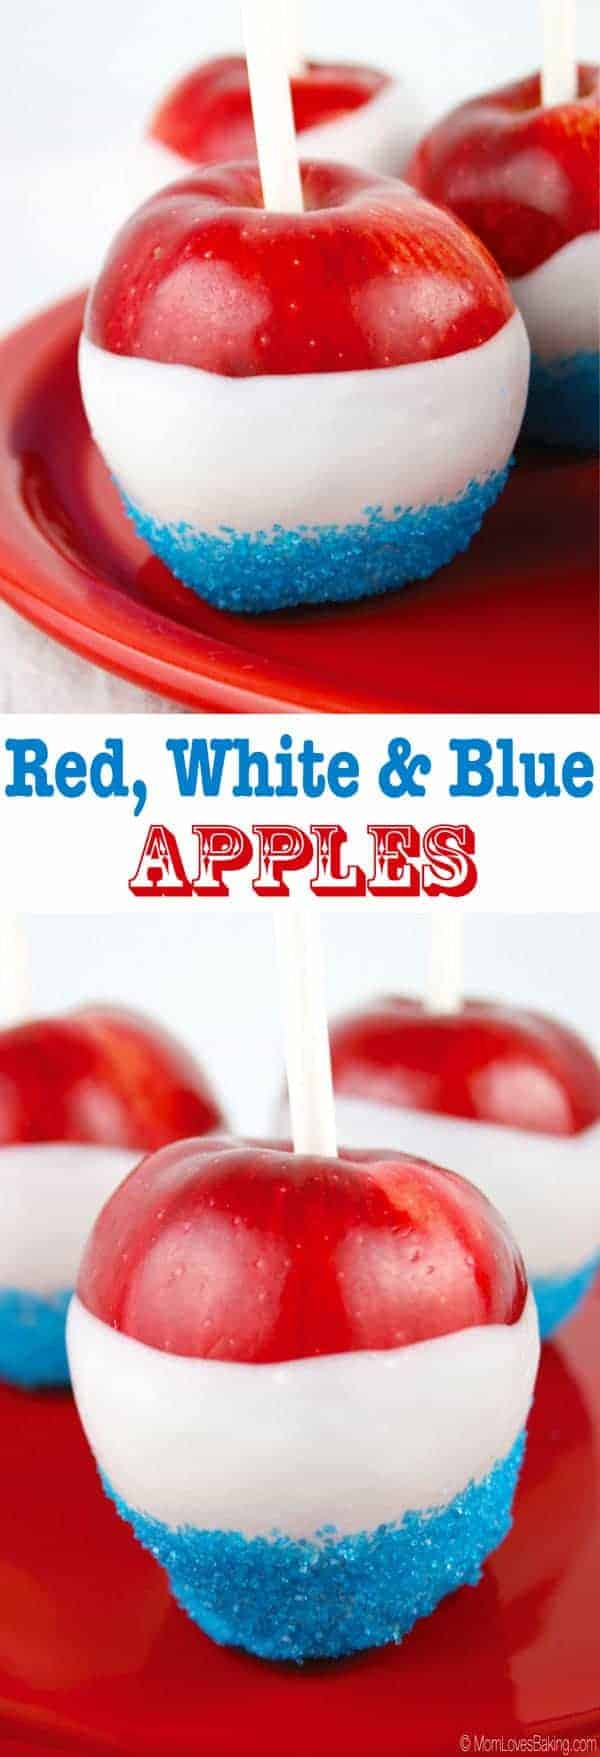 Red White and Blue Apples